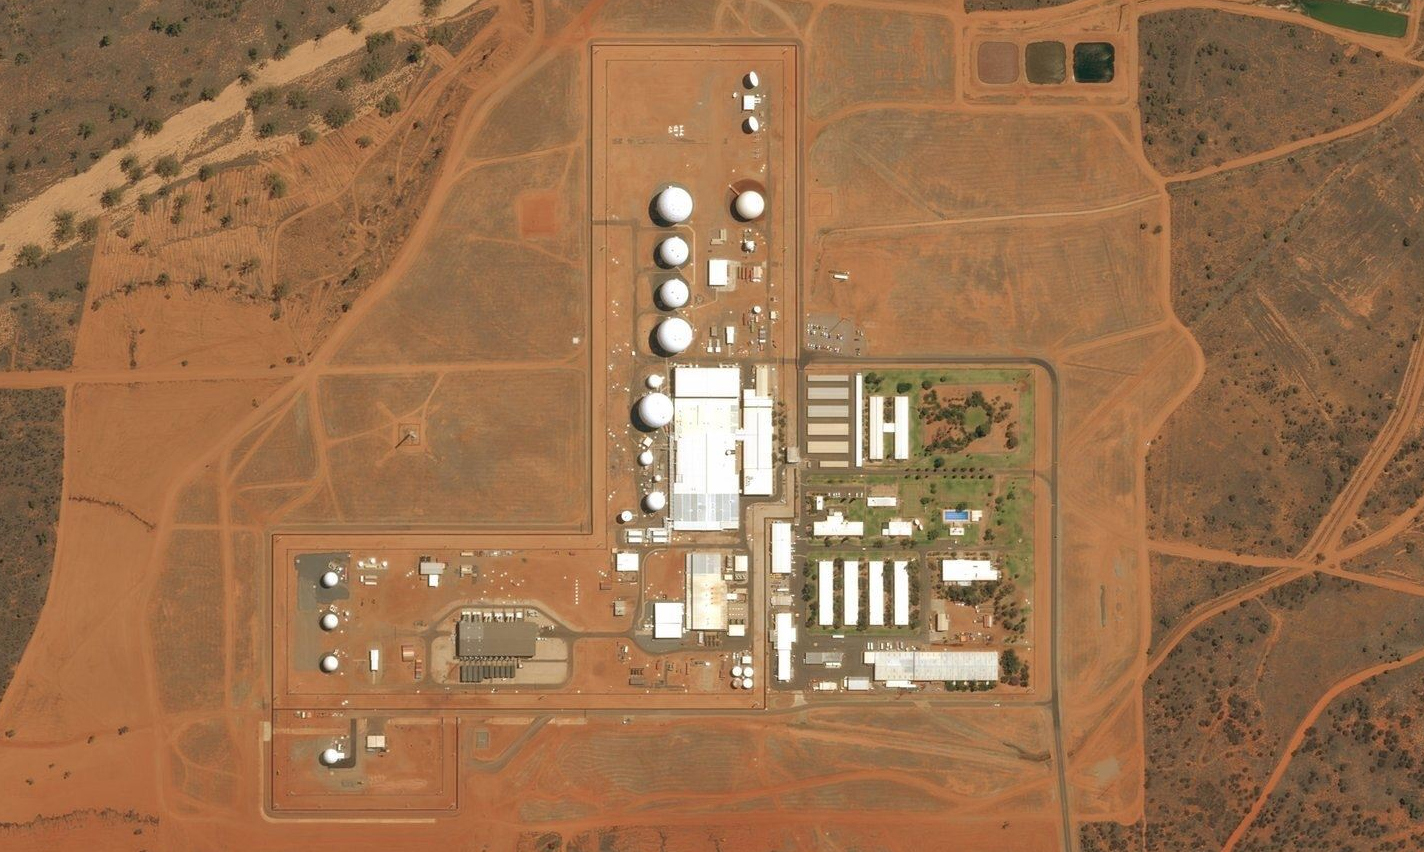 New Snowden Docs reveal the NSA spy hub Pine Gap in Australia